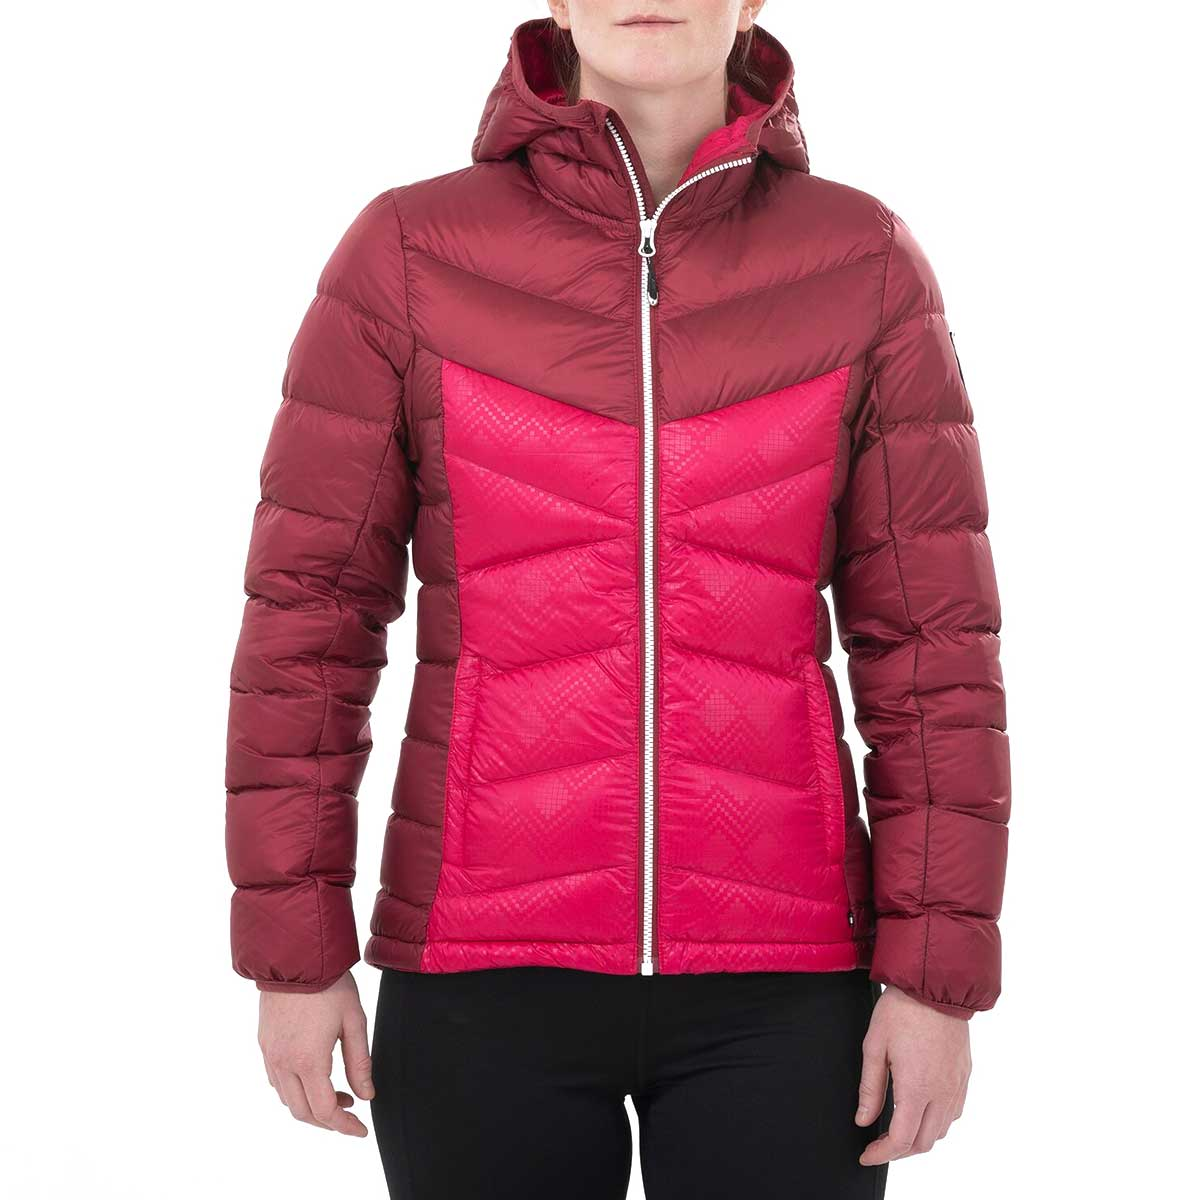 Swix Women's Romsdal Jacket in Geranium